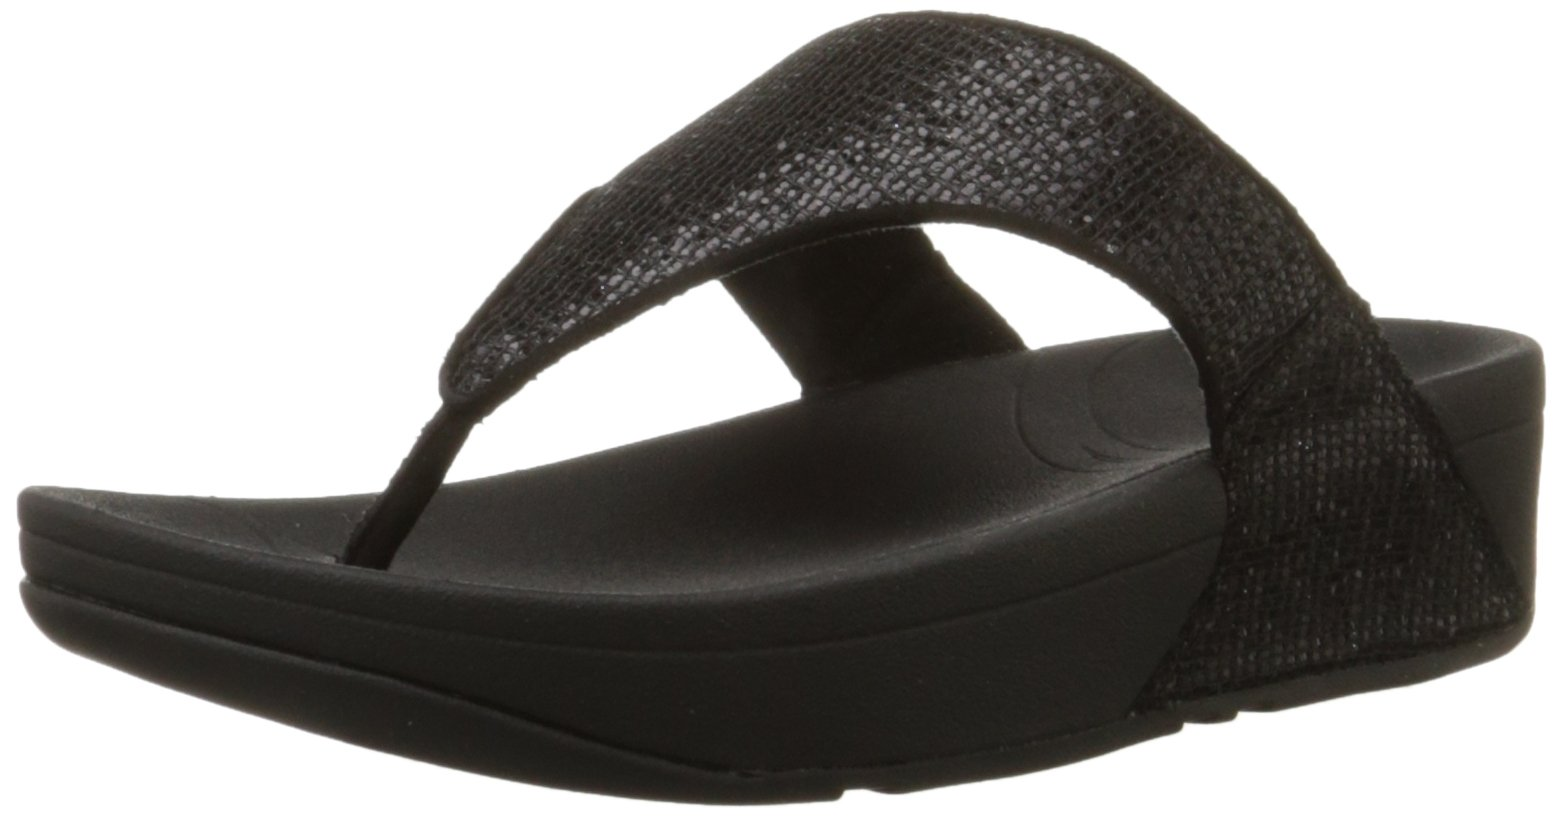 Fitflop Women's Lulu Superglitz Textile Sandal,Black,9 M US by FITFLOP